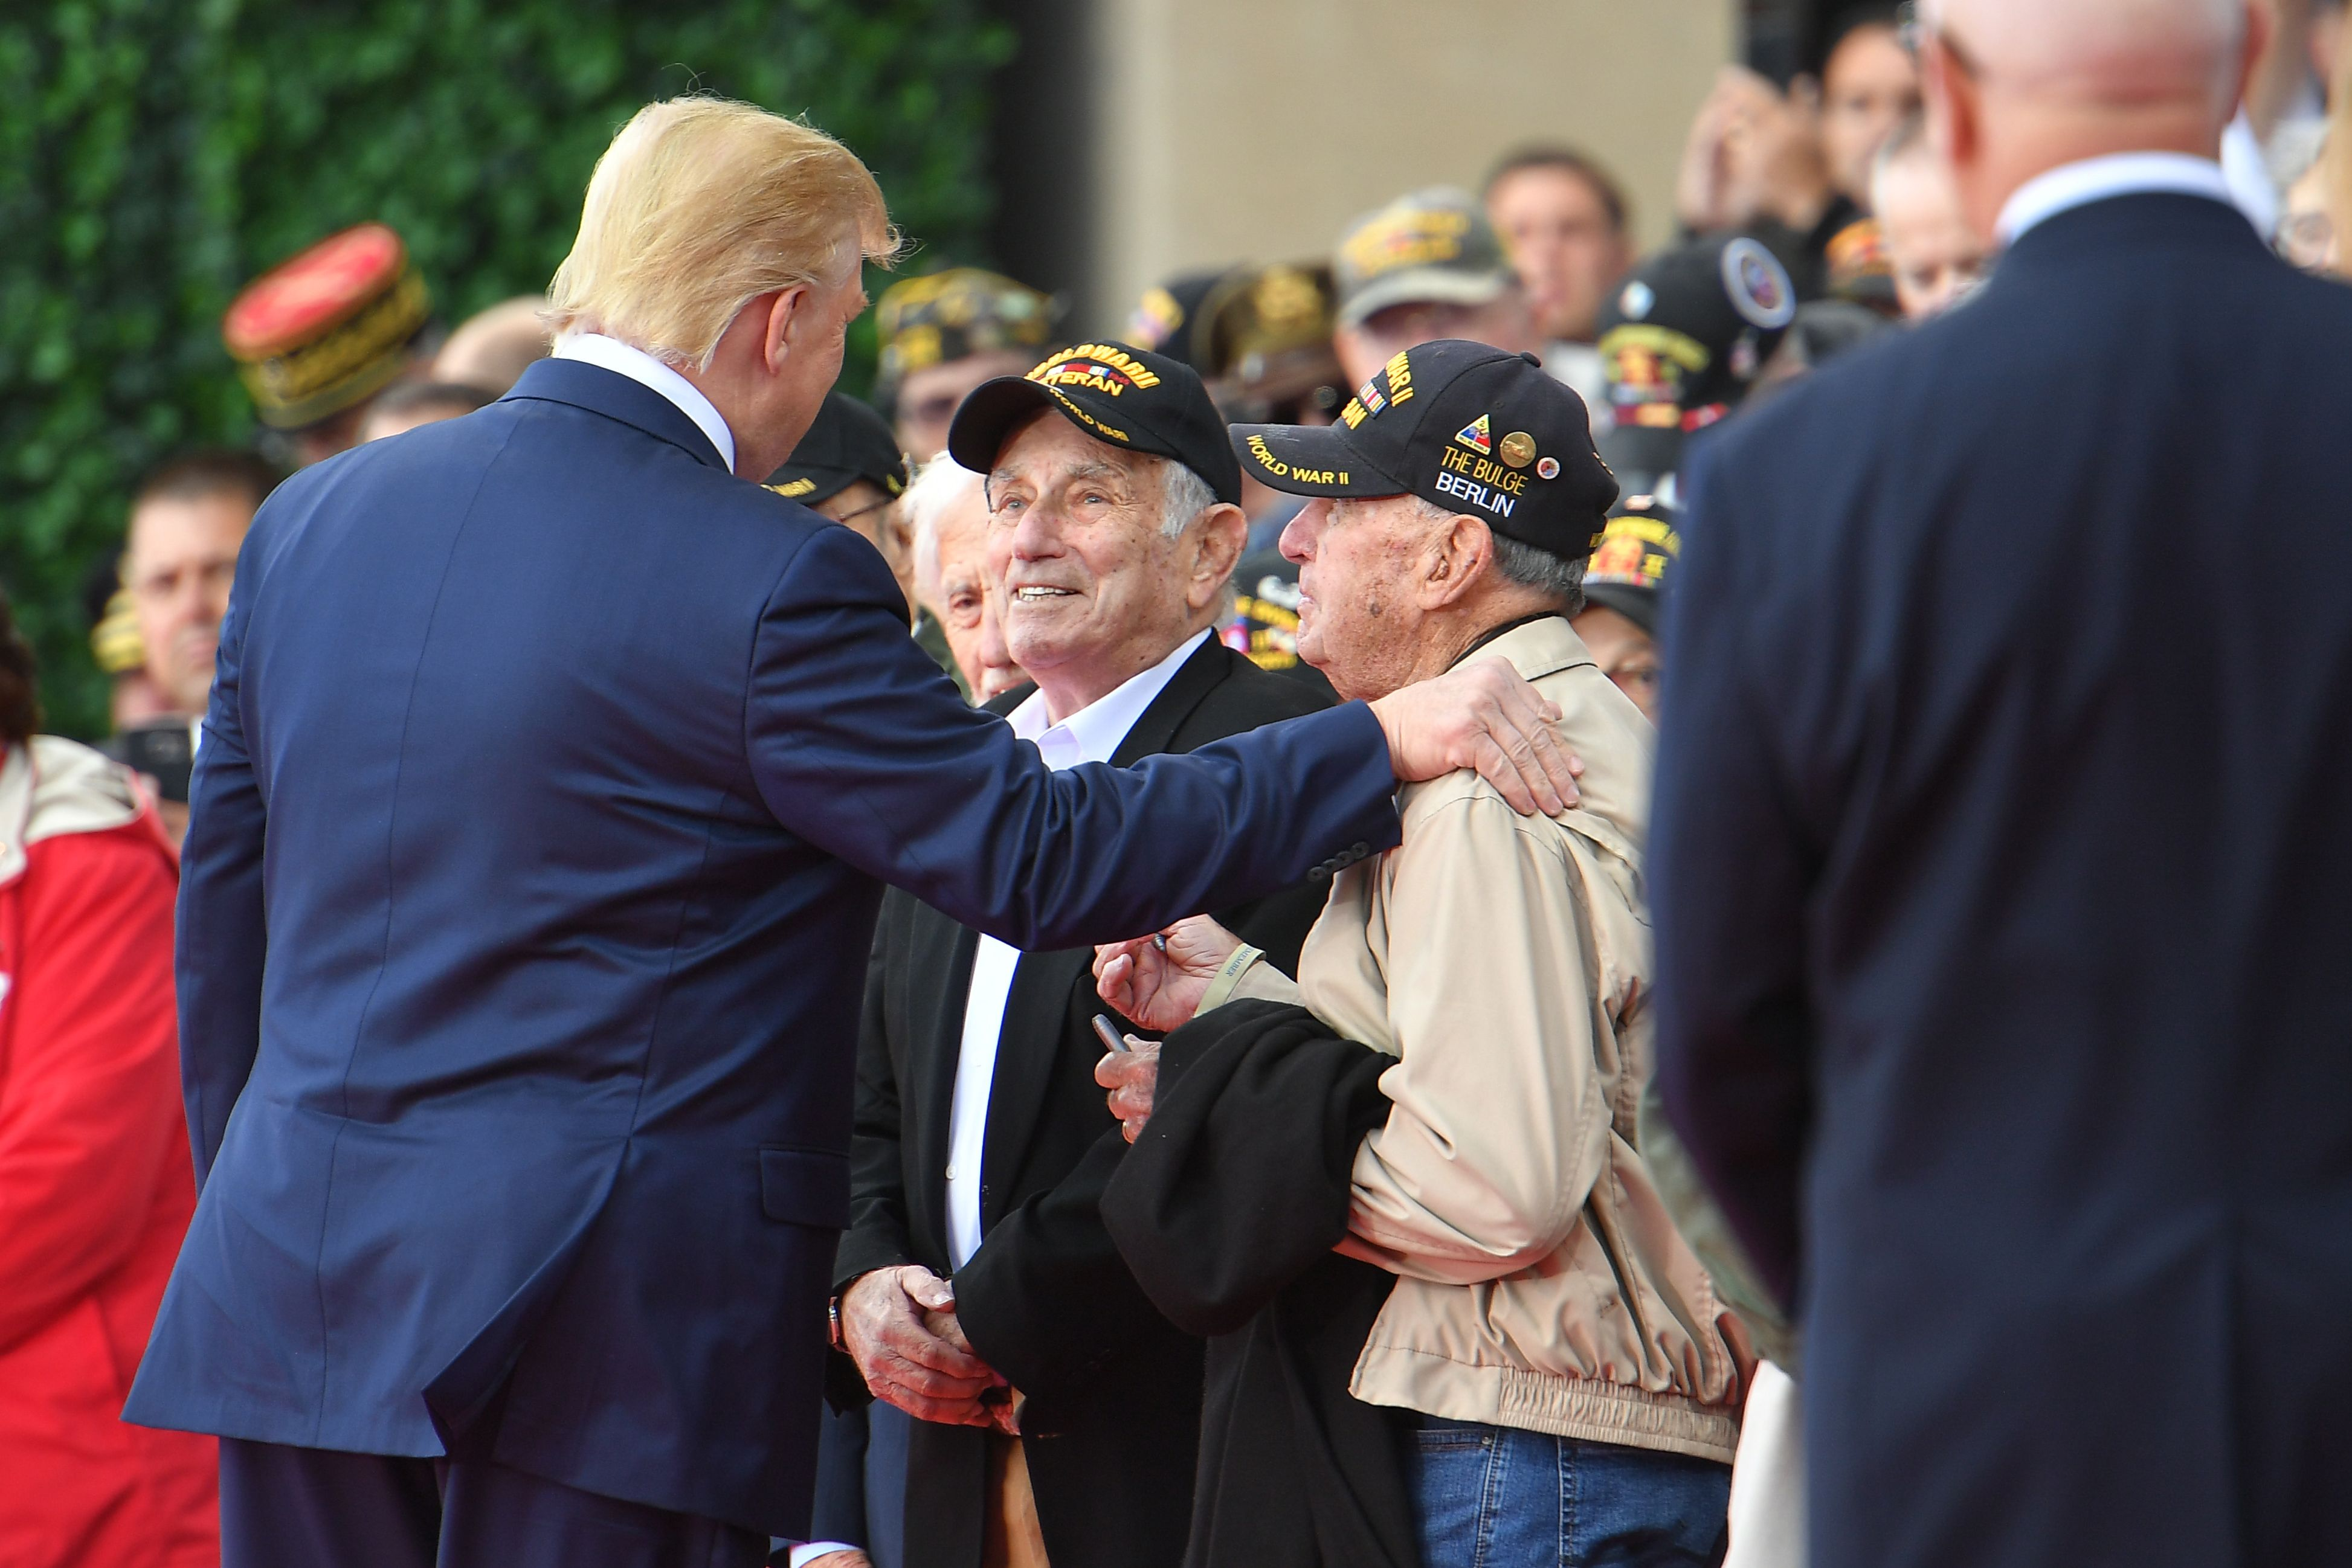 Donald Trump greets veterans before starting his speech.